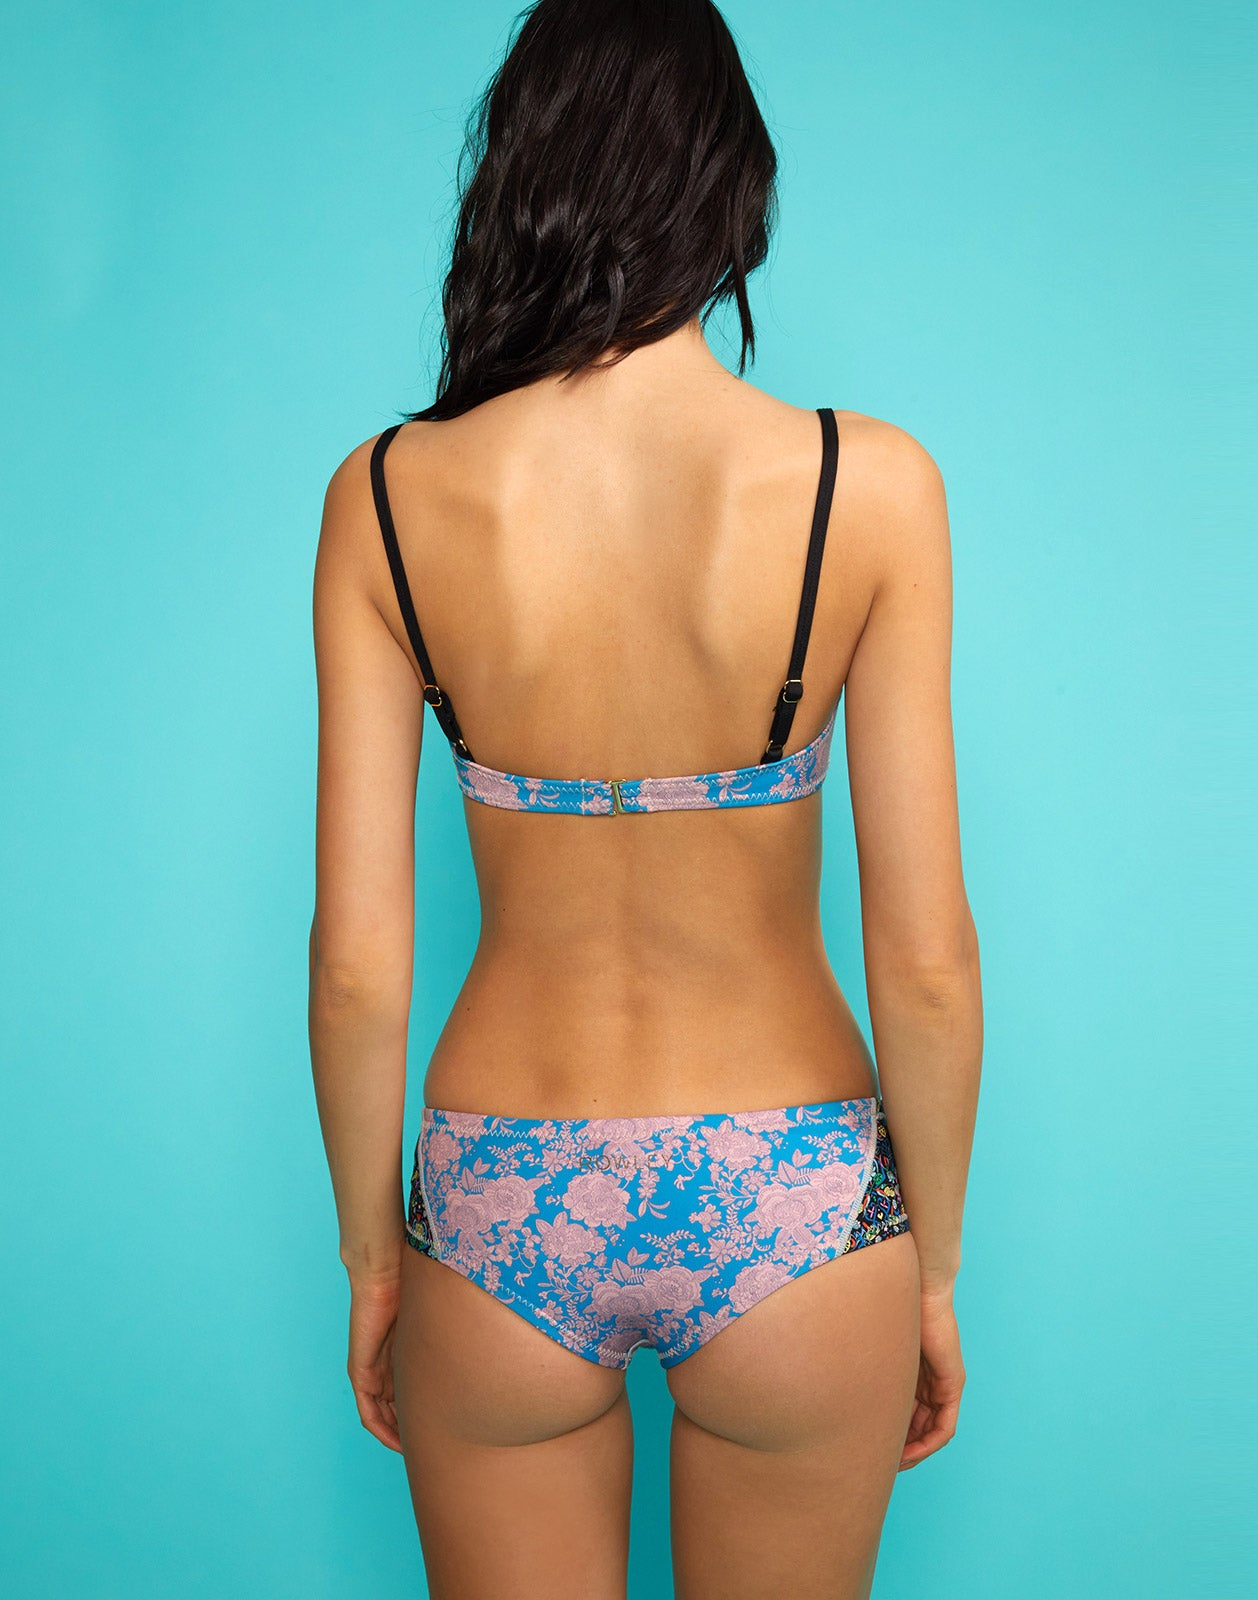 Back view of model wearing London Floral Bikini Top with London Floral Bikini Bottom.